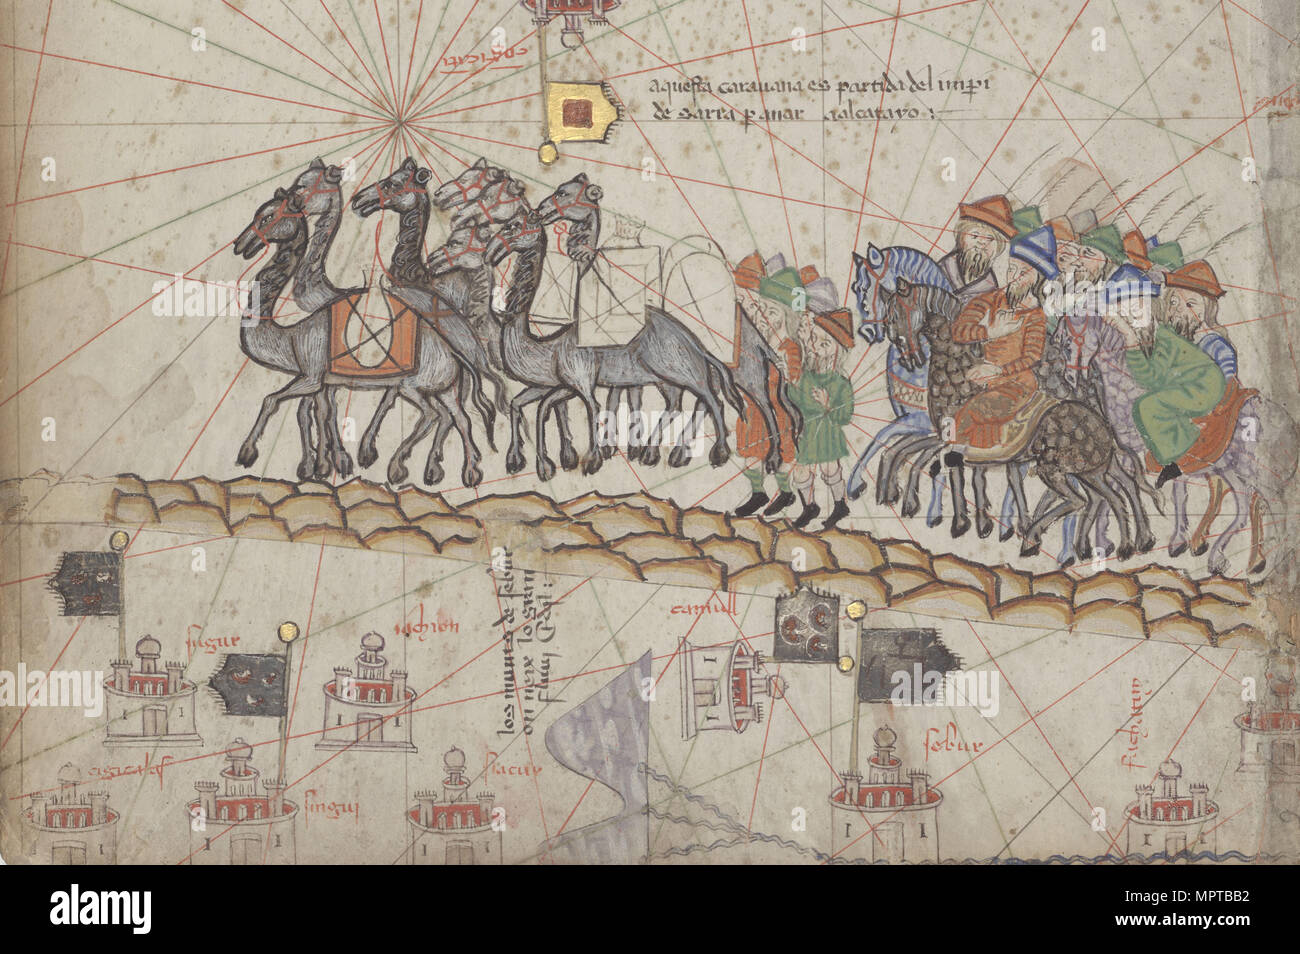 Caravan on the Silk Road. Detail from the Catalan Atlas. - Stock Image